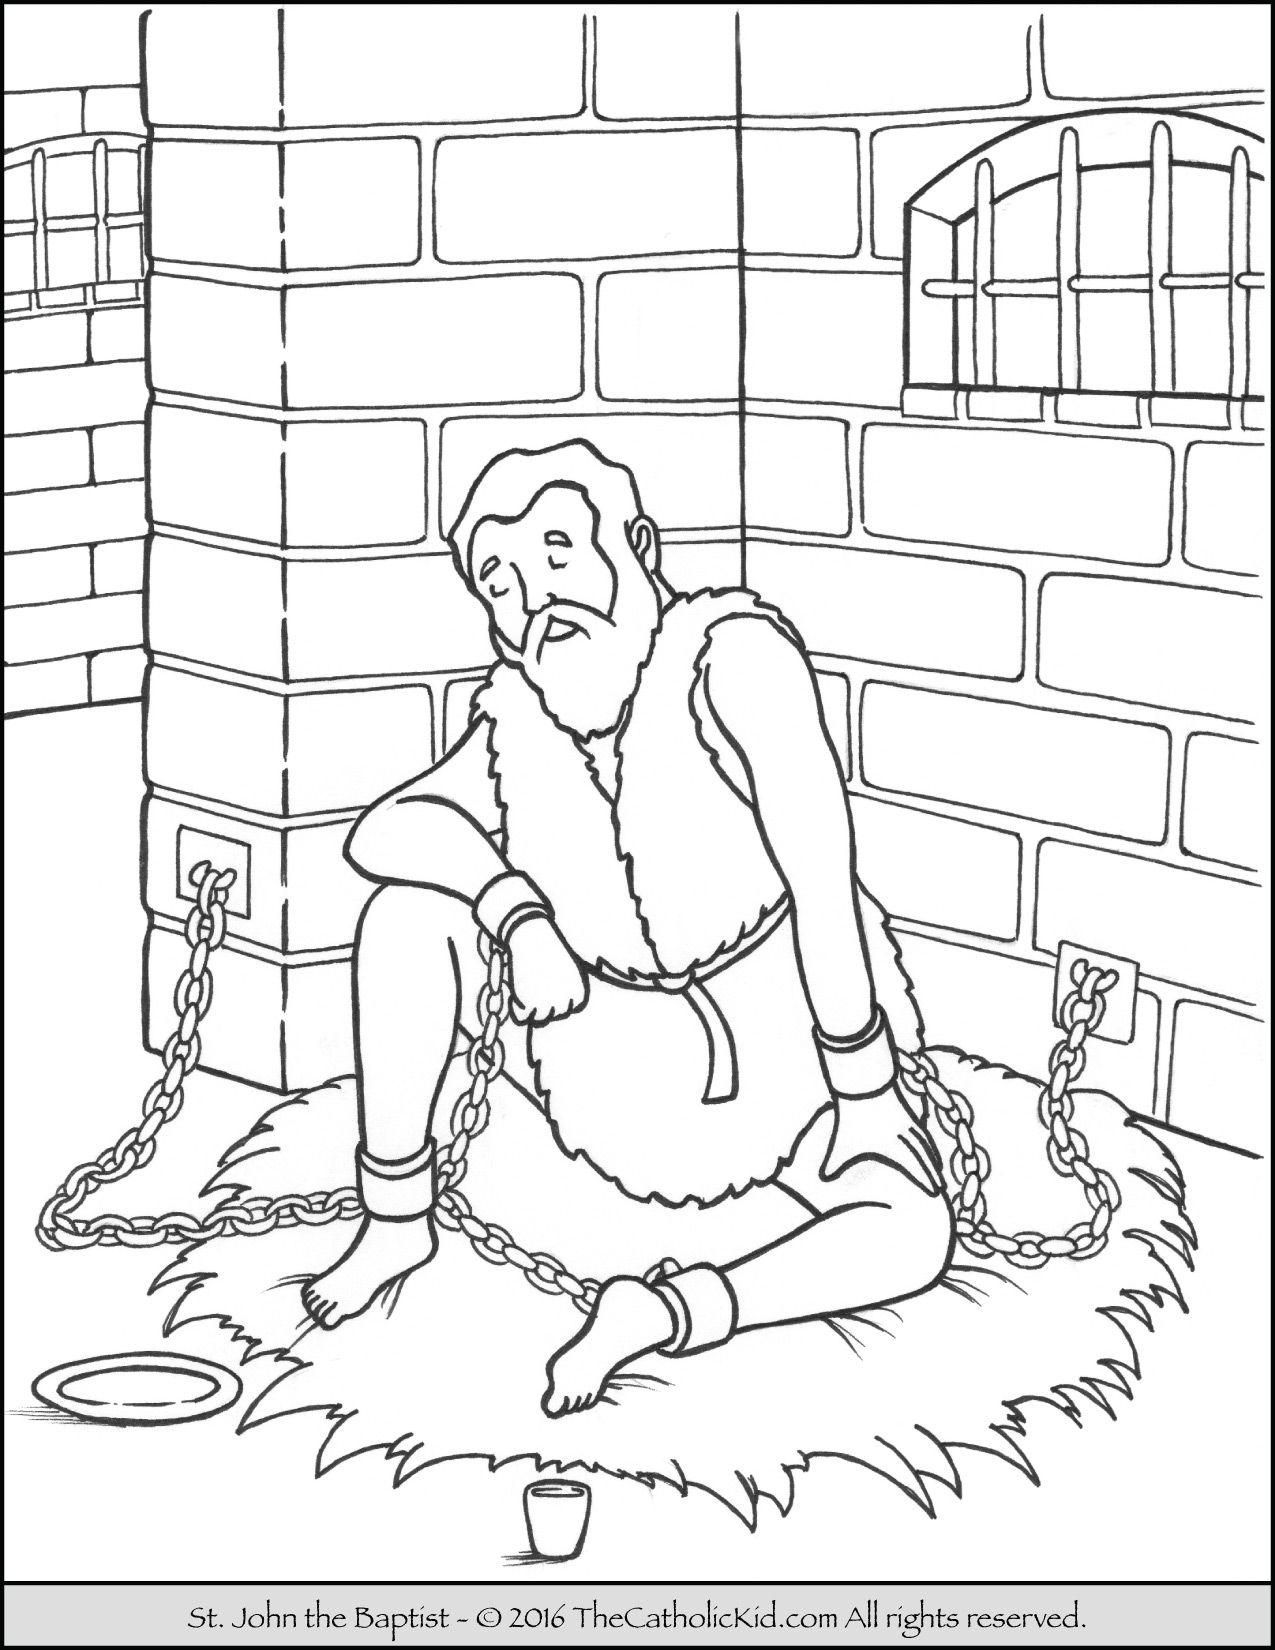 51 Coloring Page John The Baptist Bible Coloring Pages Easter Coloring Pages John The Baptist